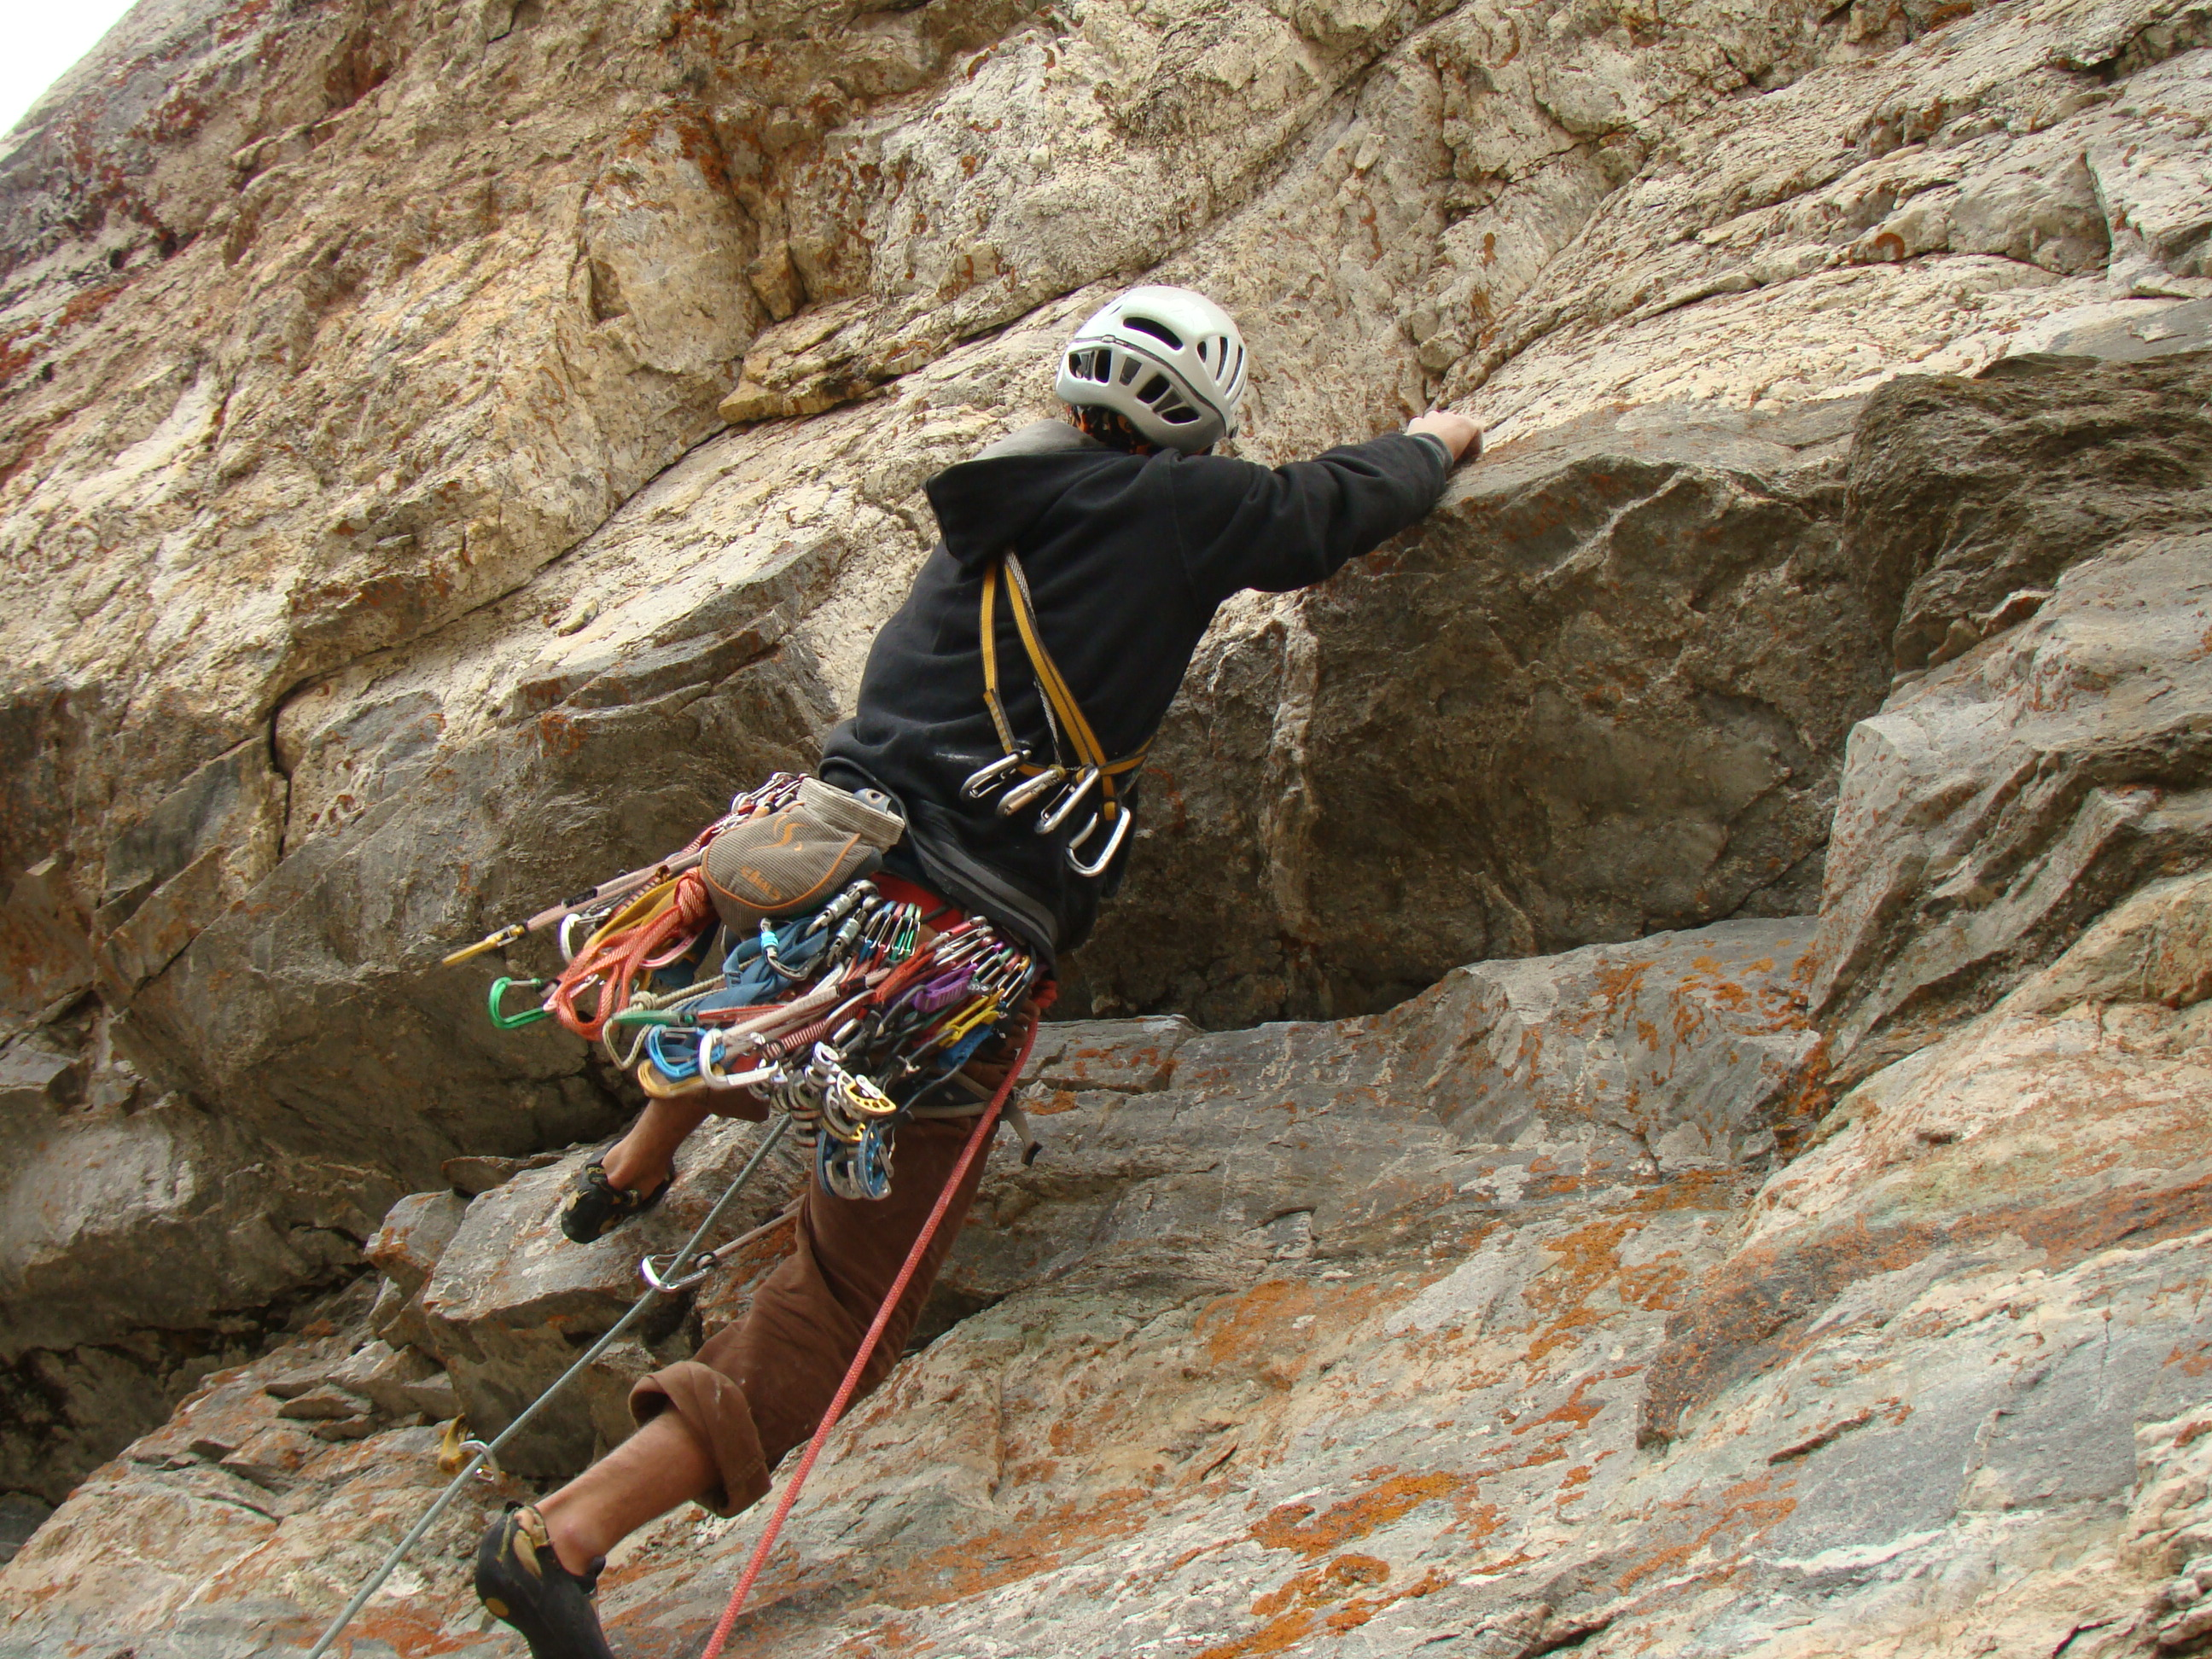 Climbing for experienced climbers